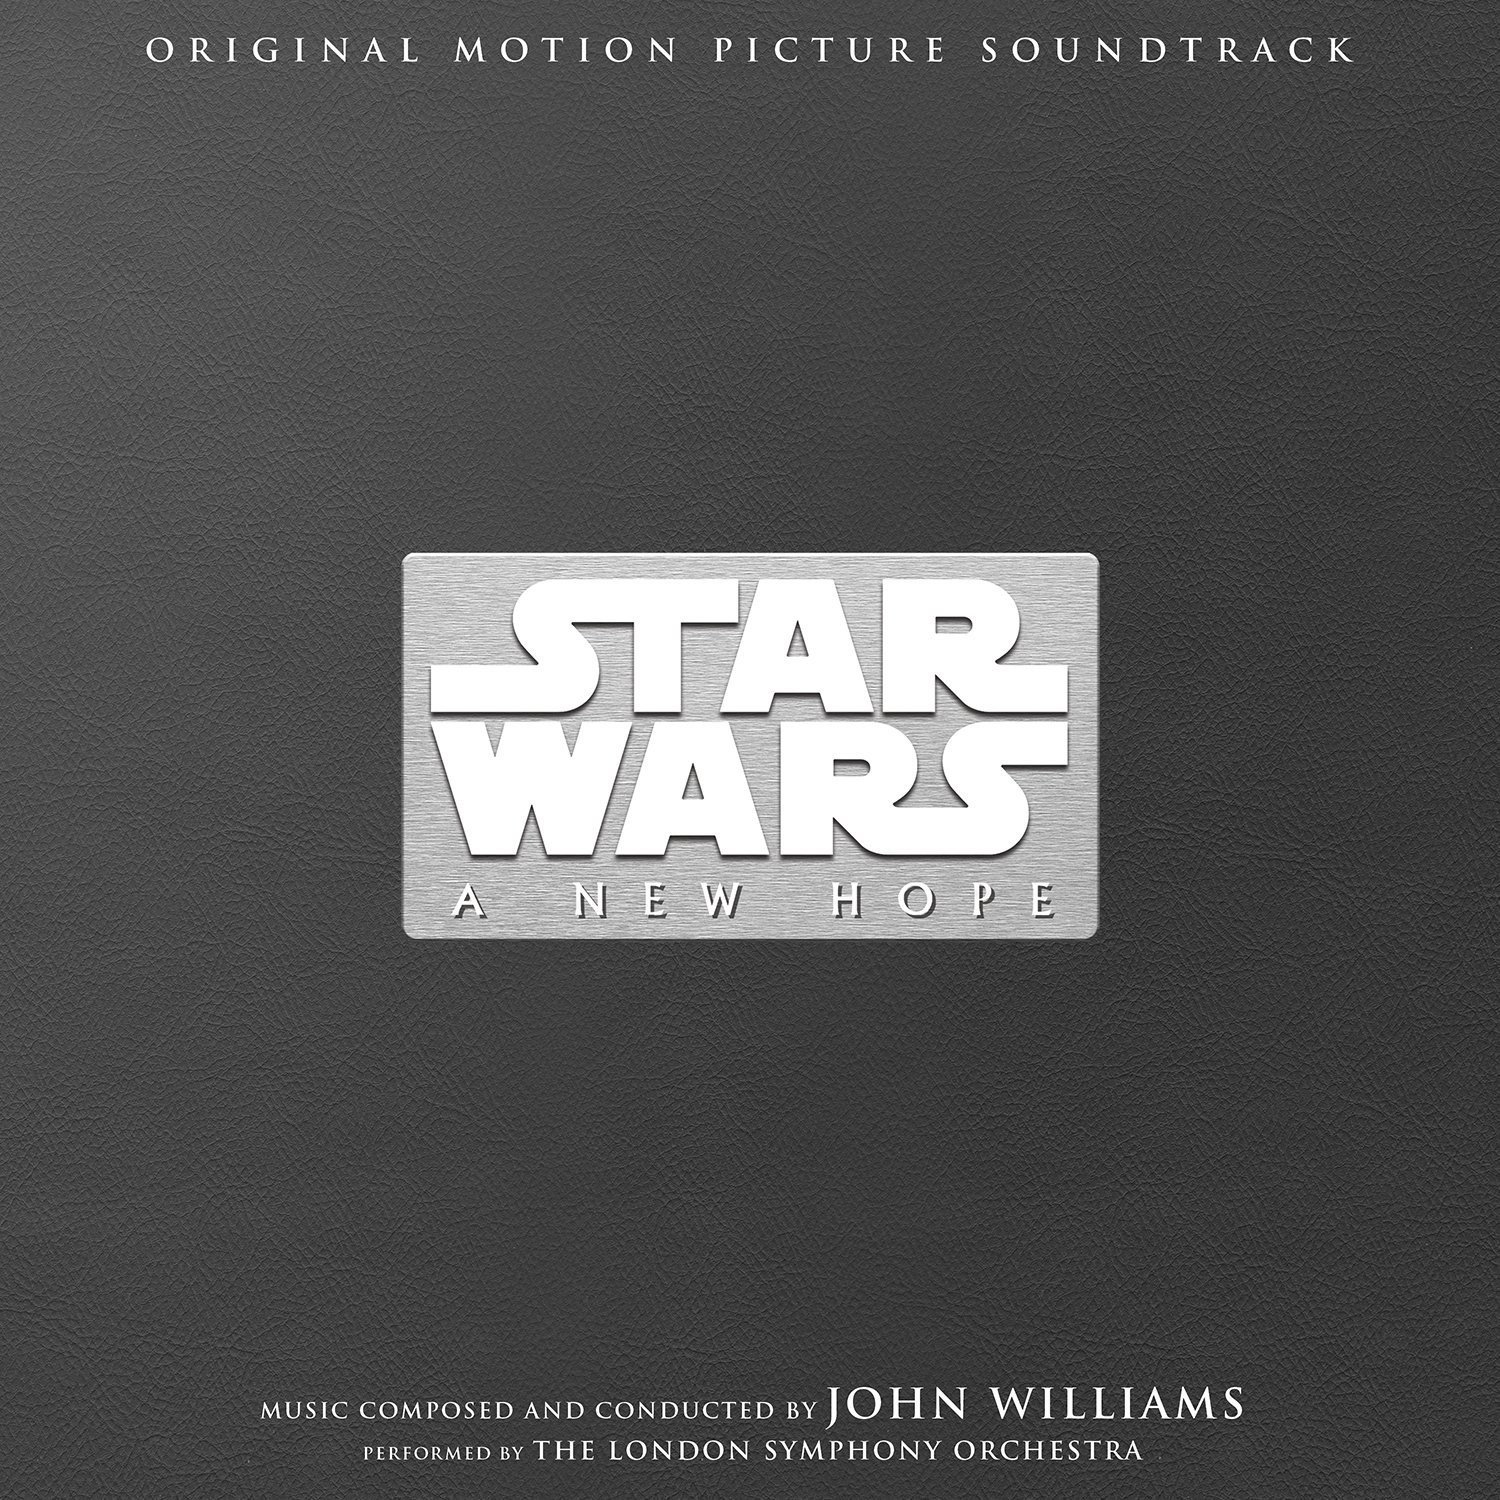 a new hope soundtrack download